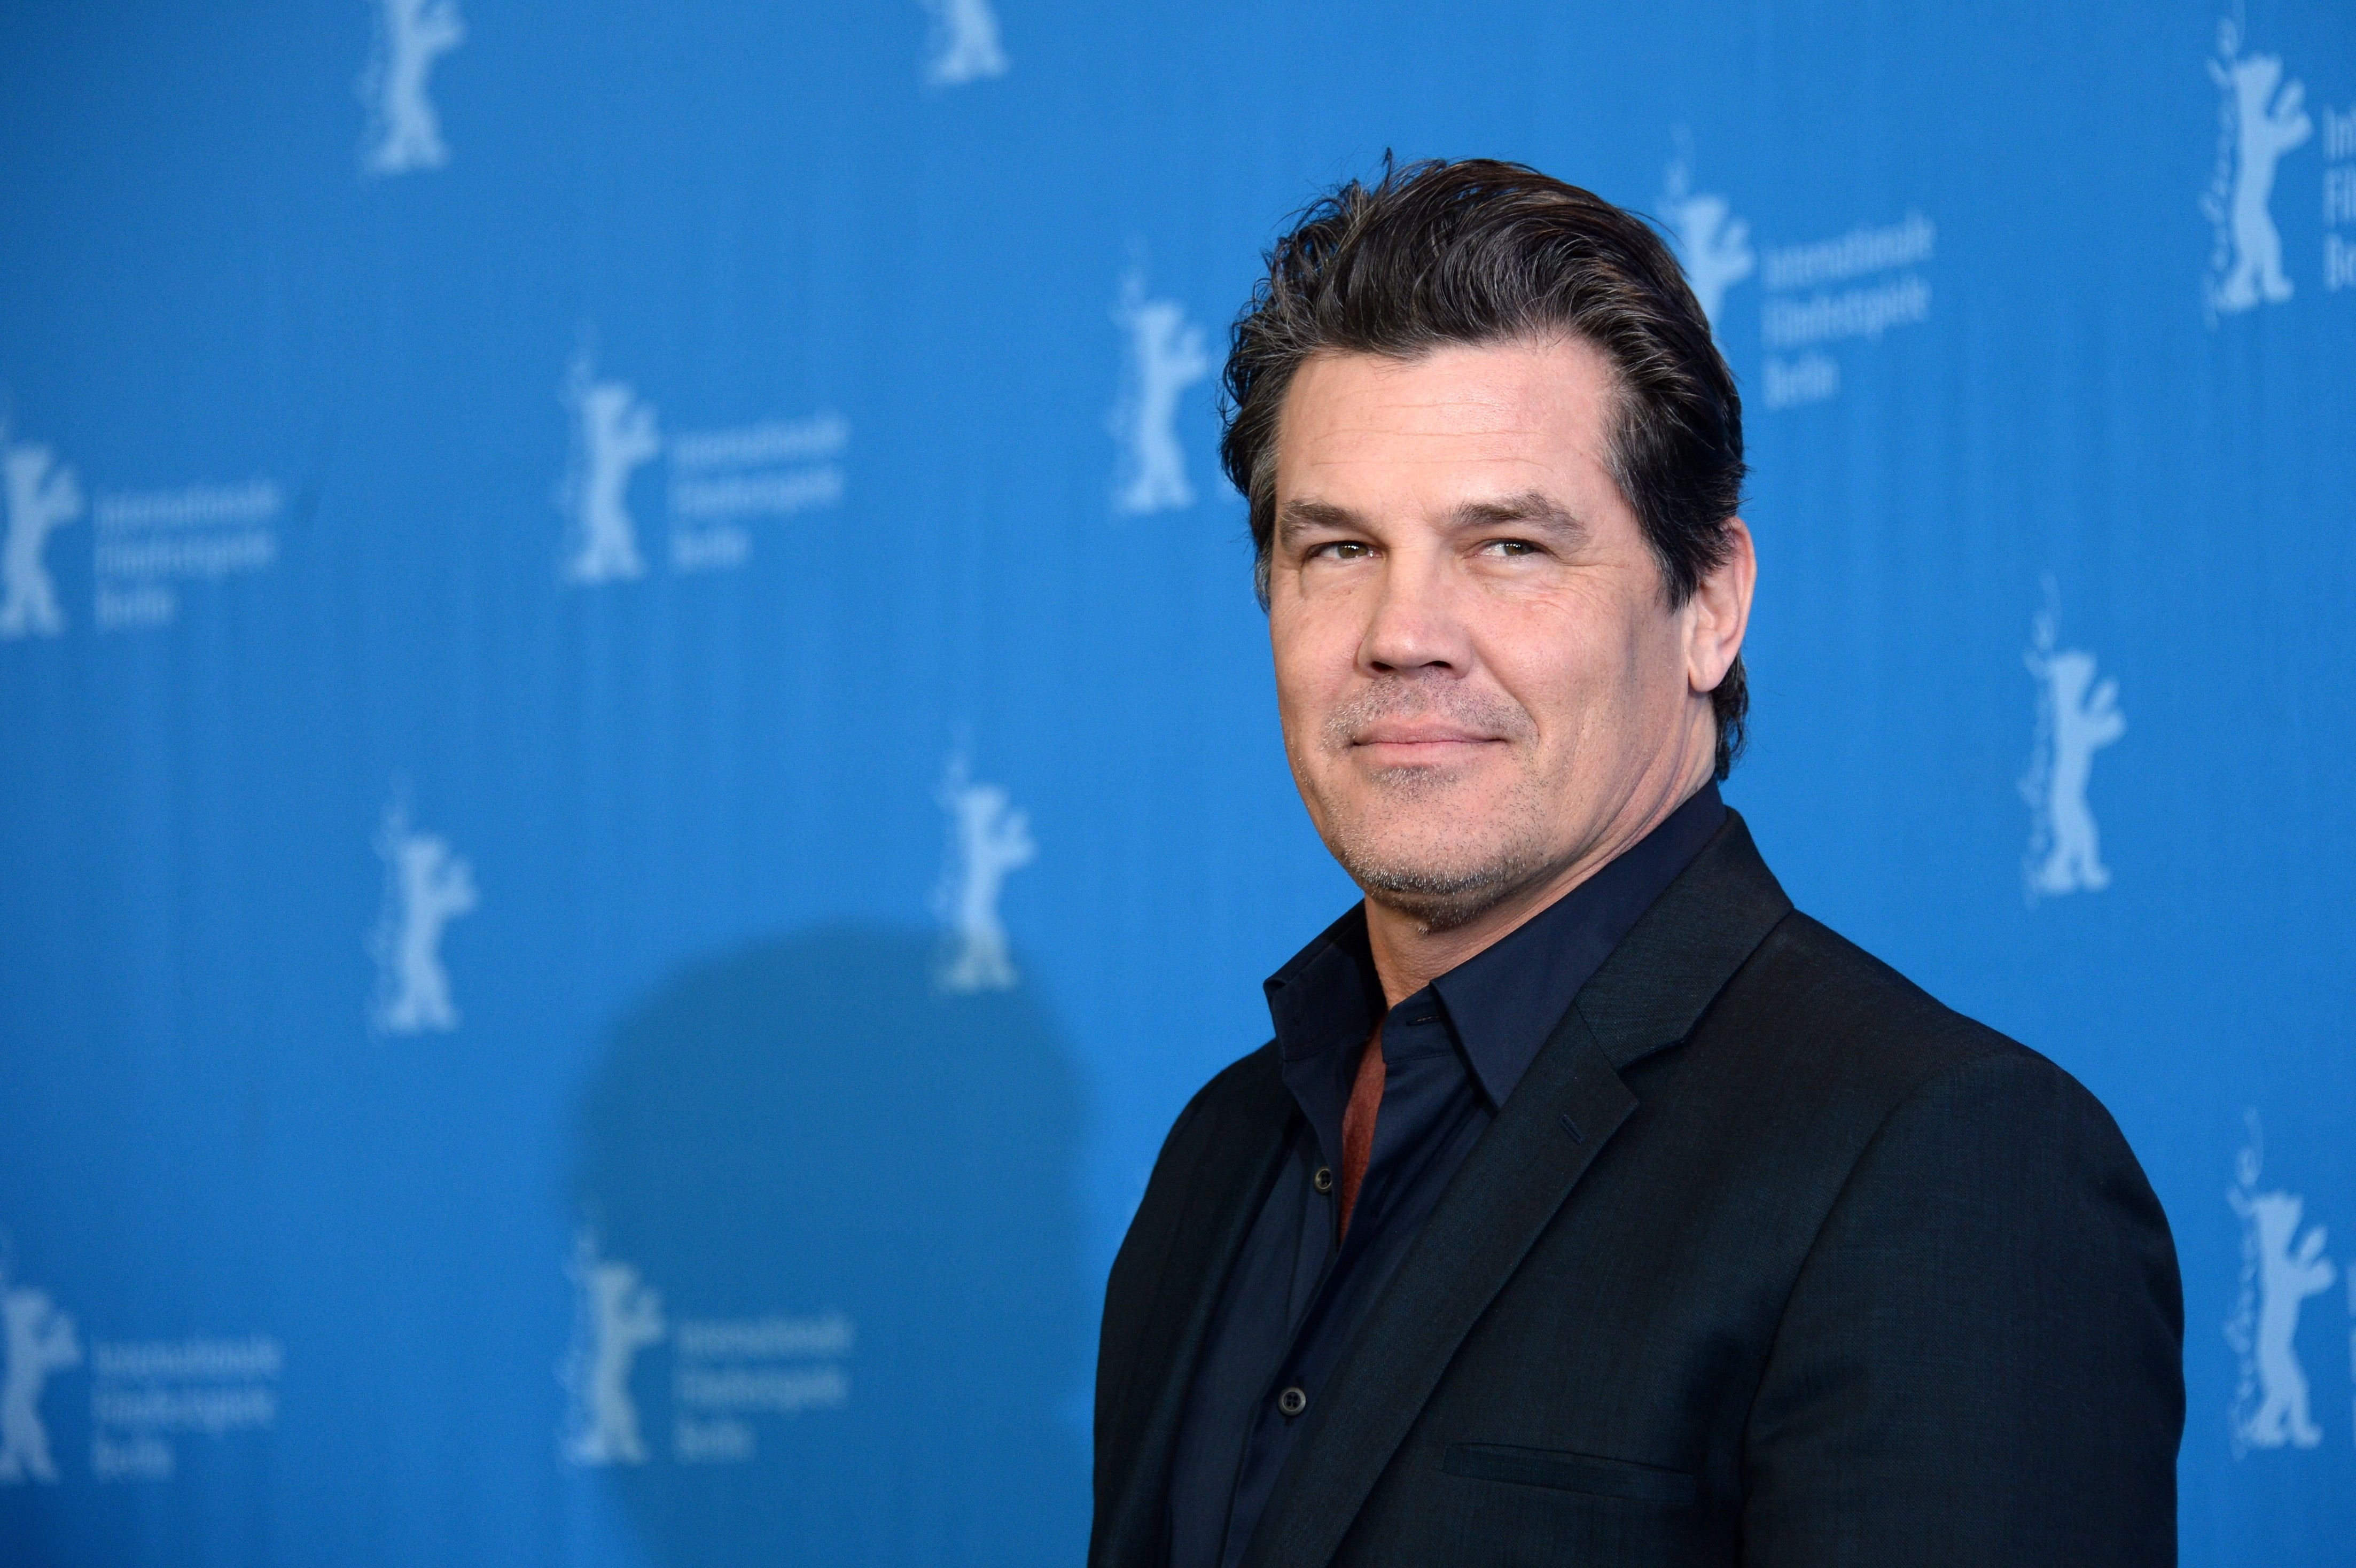 Actor Josh Brolin at the 'Hail, Caesar!' photo call during the 66th Berlinale International Film Festival Berlin at Grand Hyatt Hotel on February 11, 2016 | Photo: Getty Images